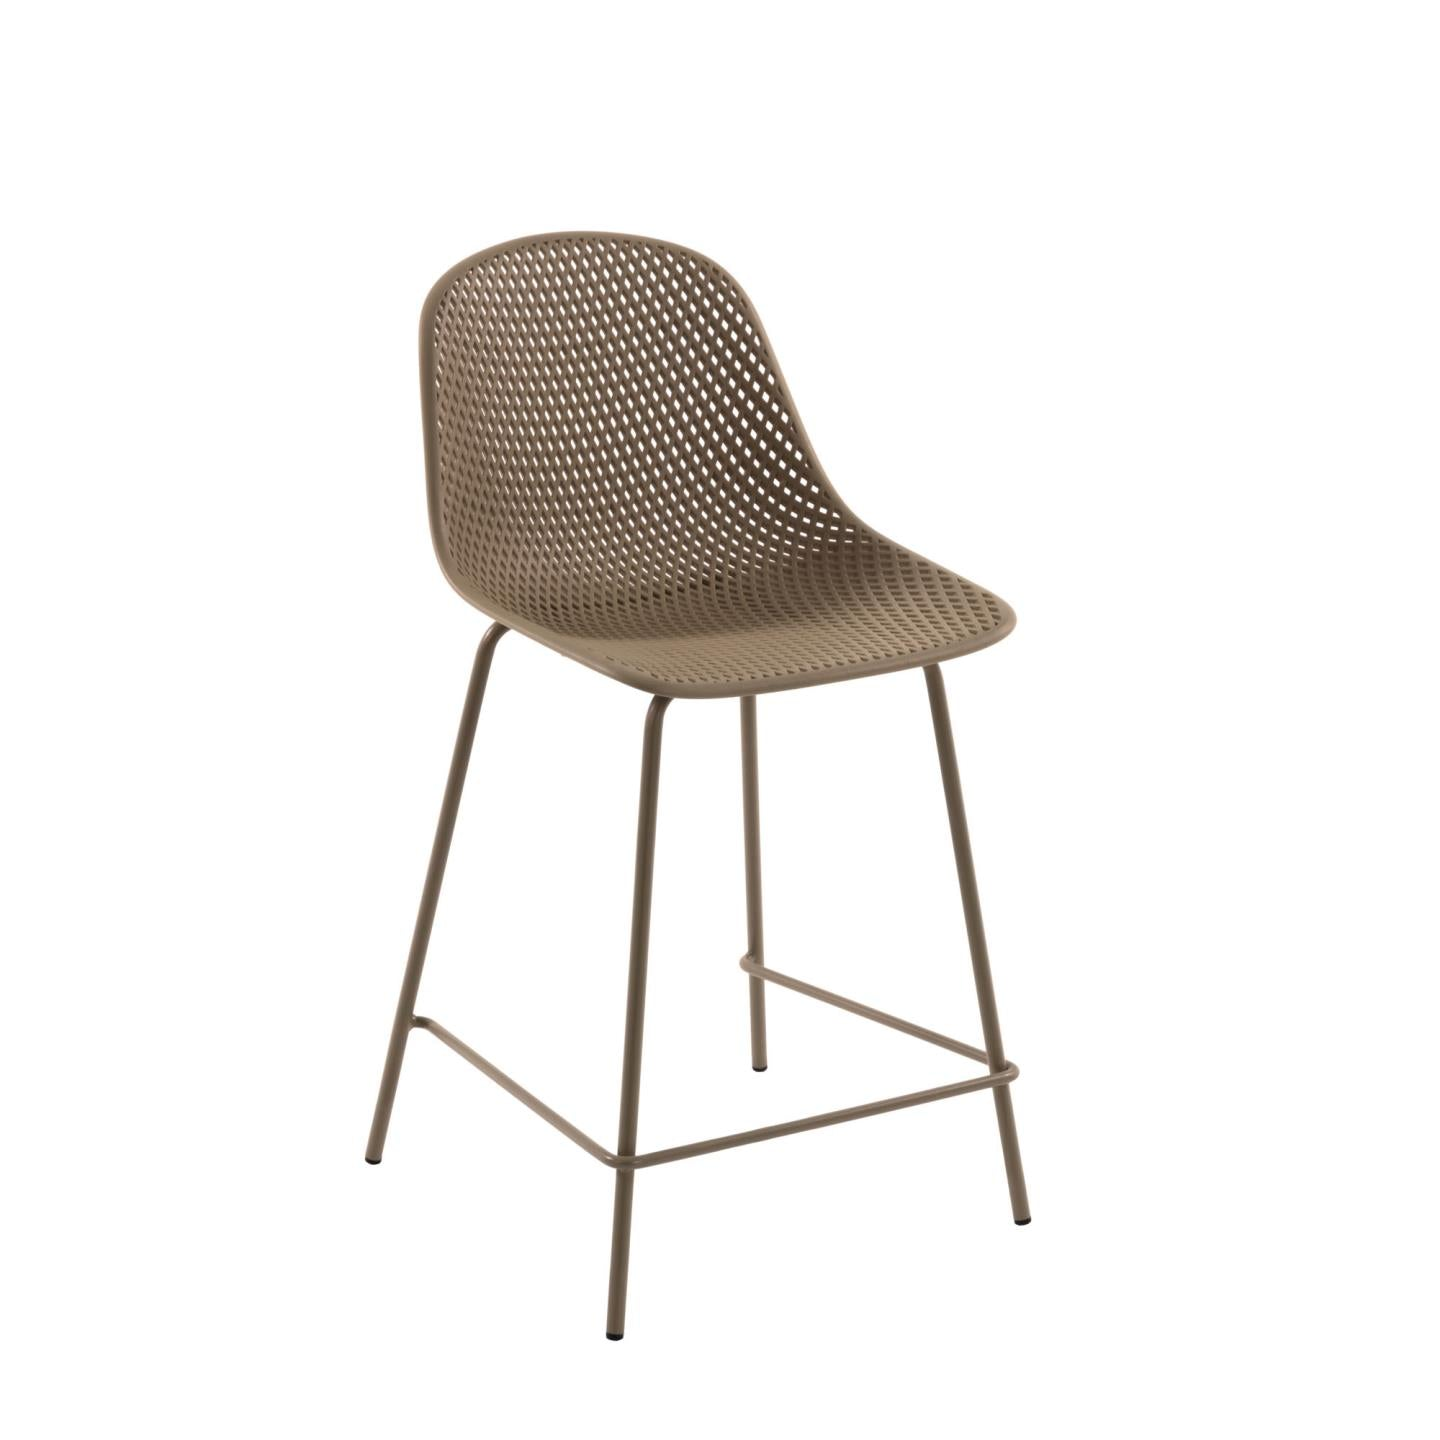 Luino Outdoor Stool Beige Height 65 cm, Barstool - Home-Buy Interiors